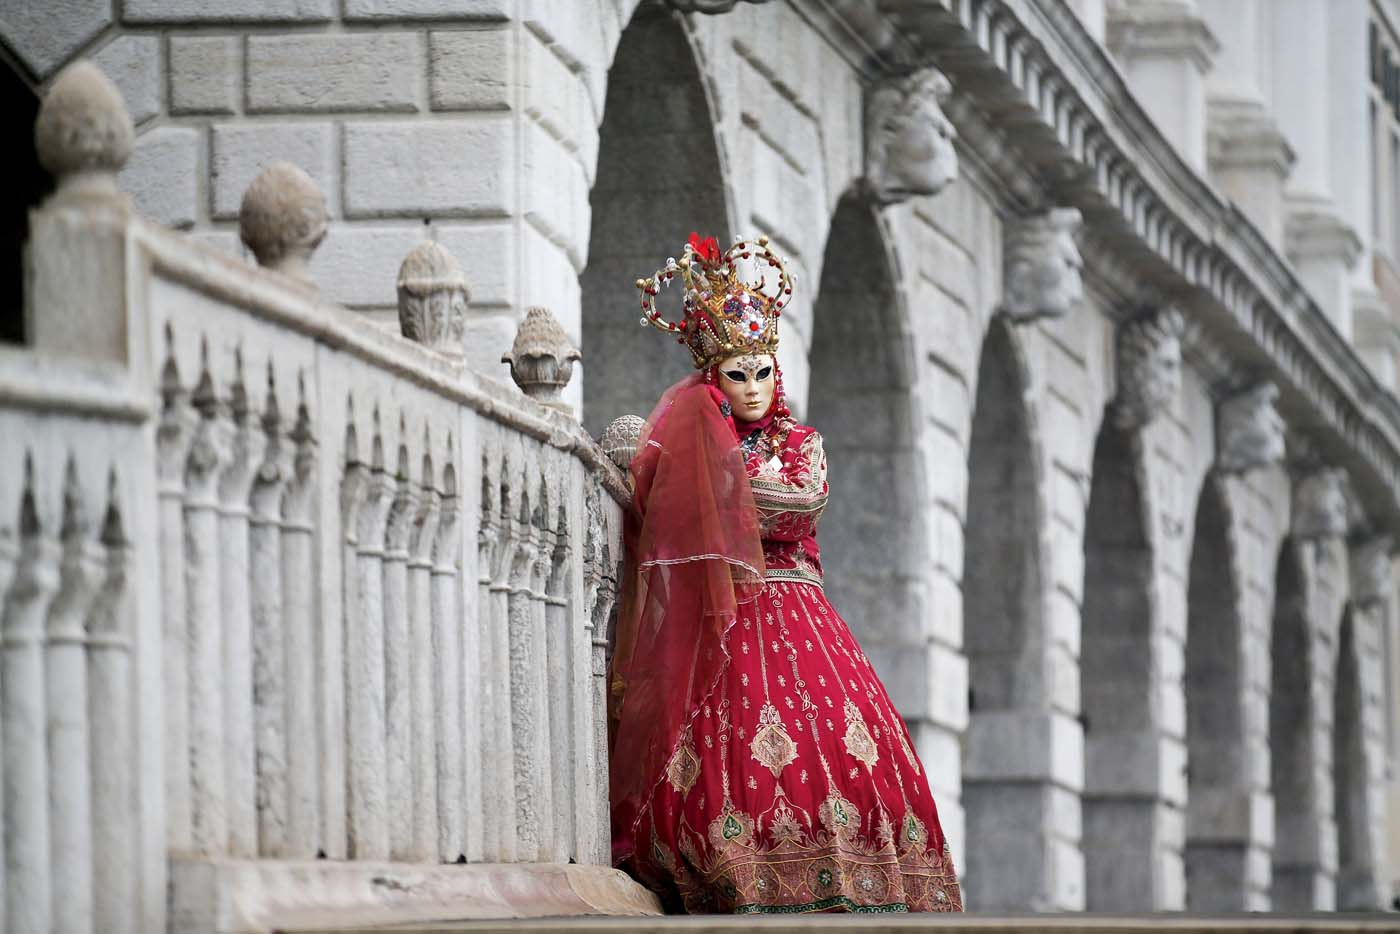 A masked reveller poses during the Venice Carnival, in San Marco Piazza January 30, 2016. REUTERS/Alessandro Bianchi